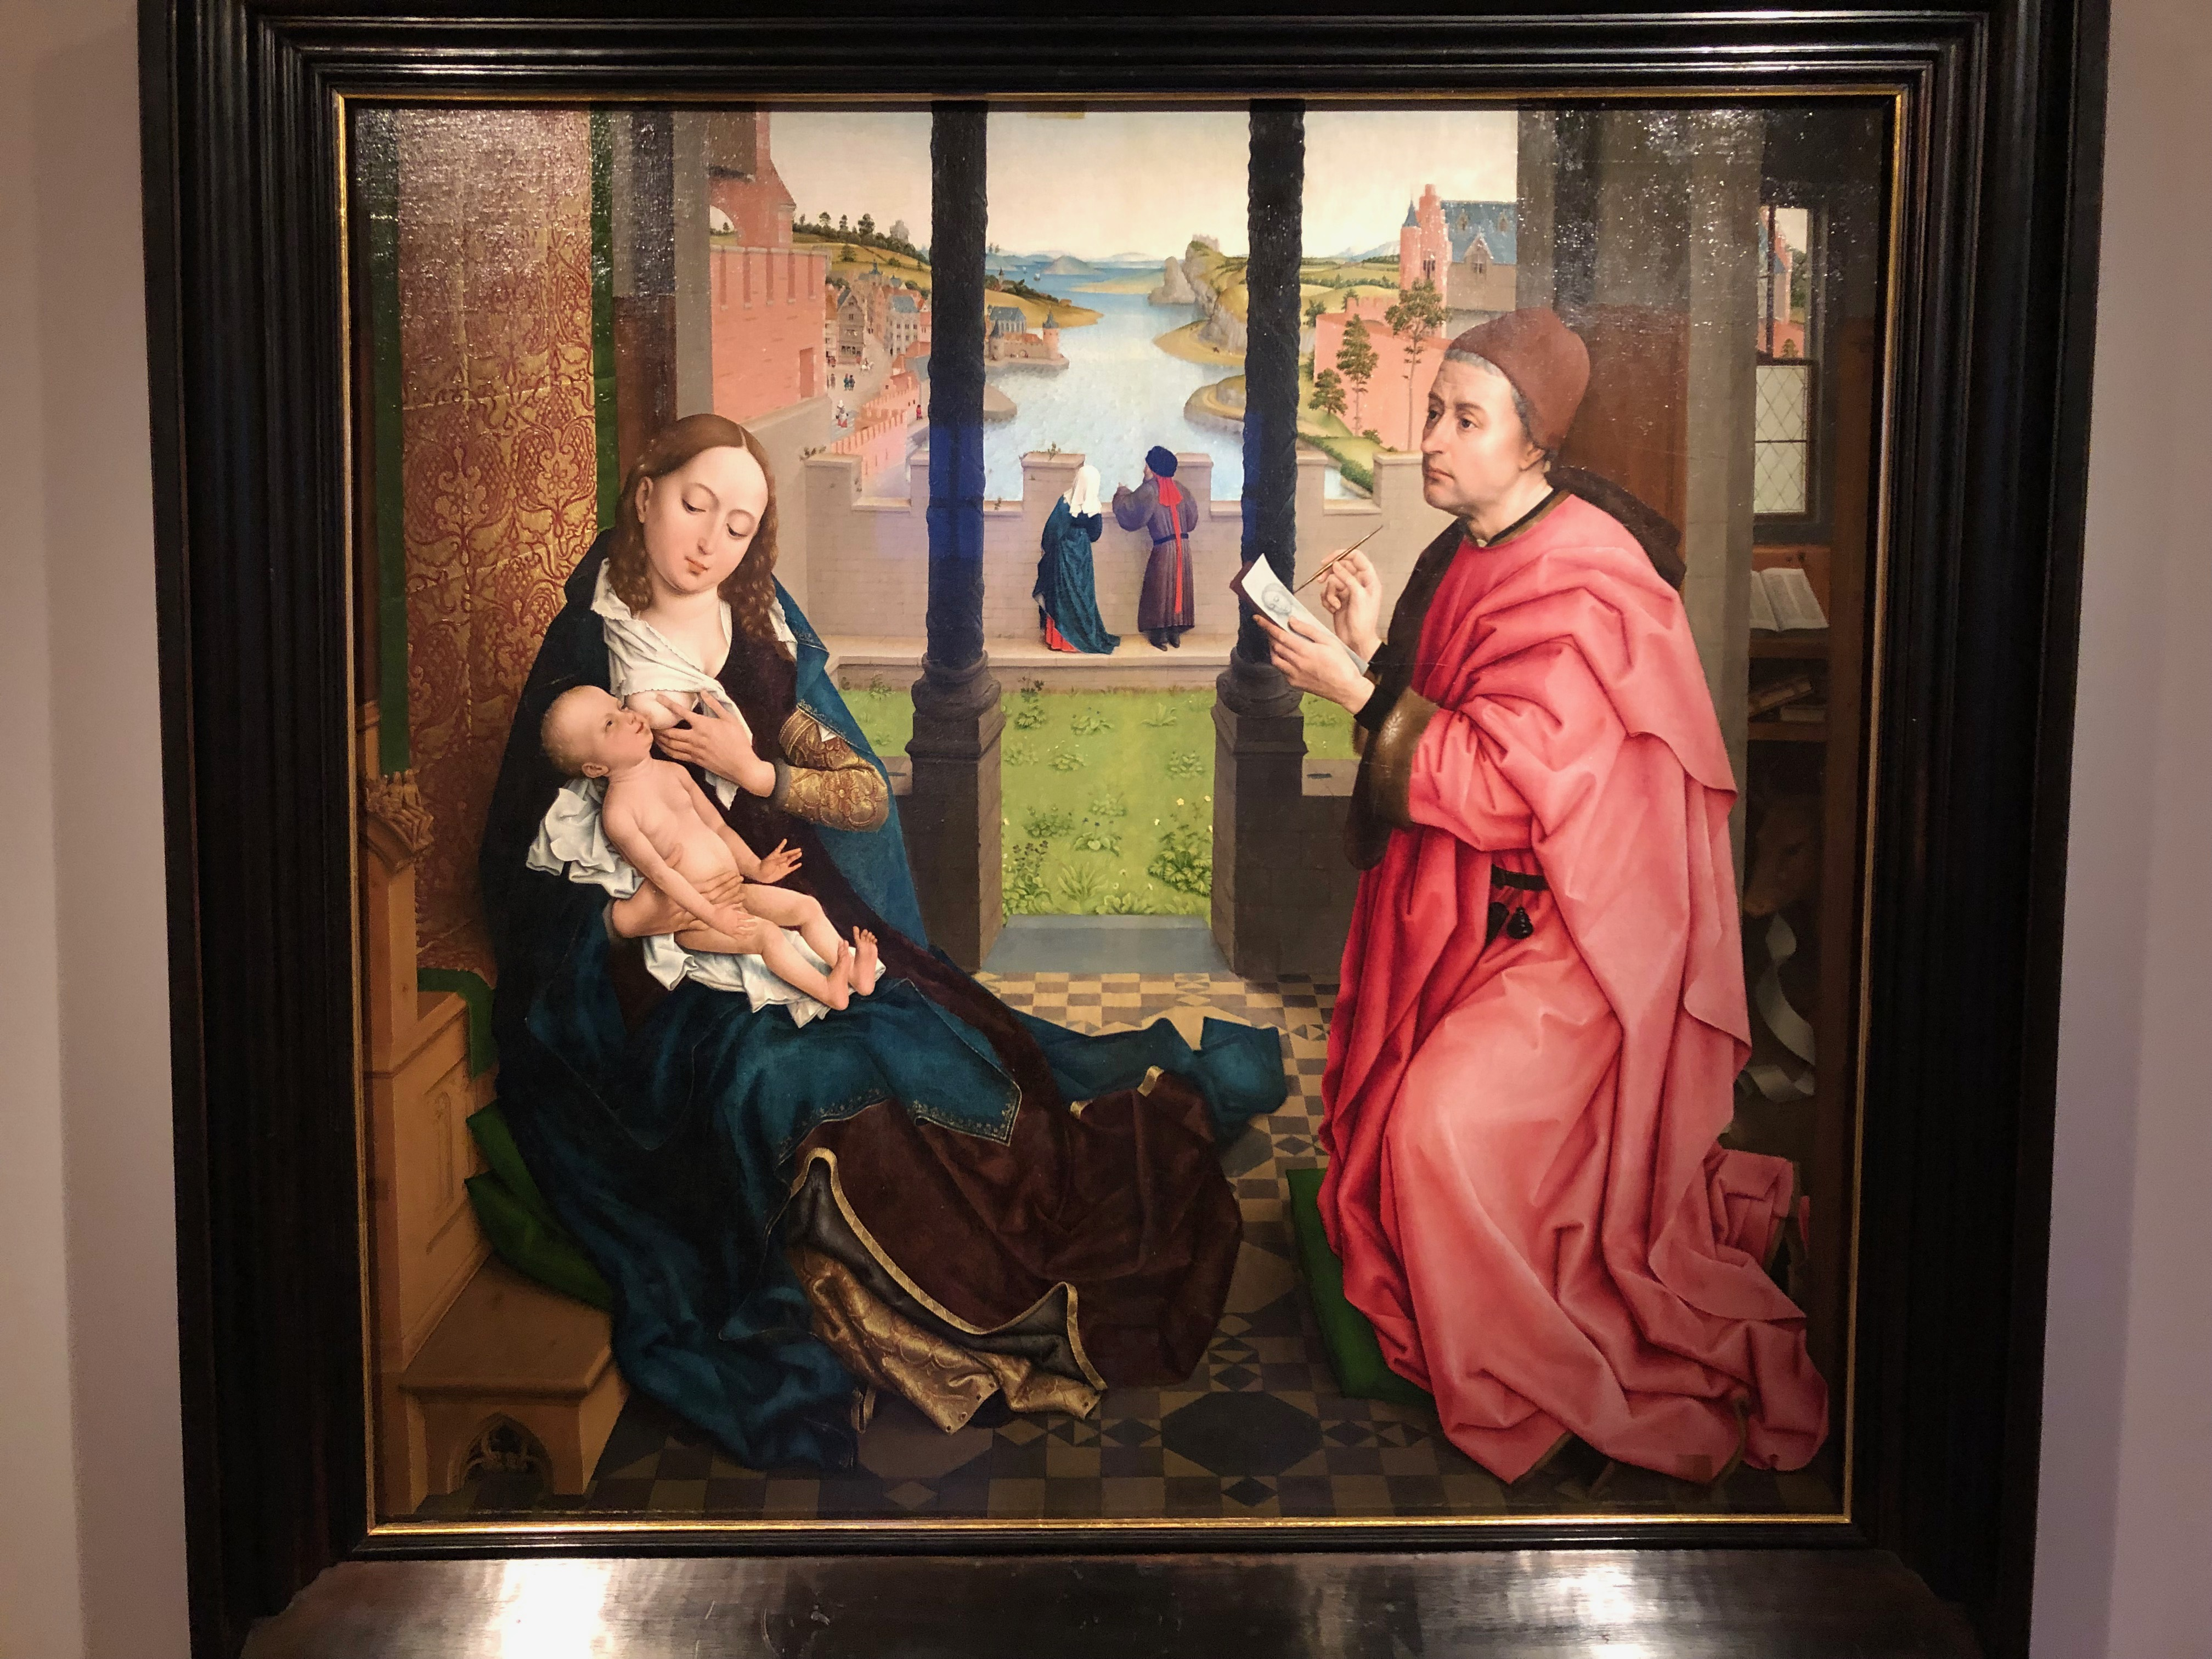 St Lucas painting the Madonna with Child,  Rogier van der Weyden, - hermitage - Your Host & Guide - www.yourhostandguide.nl